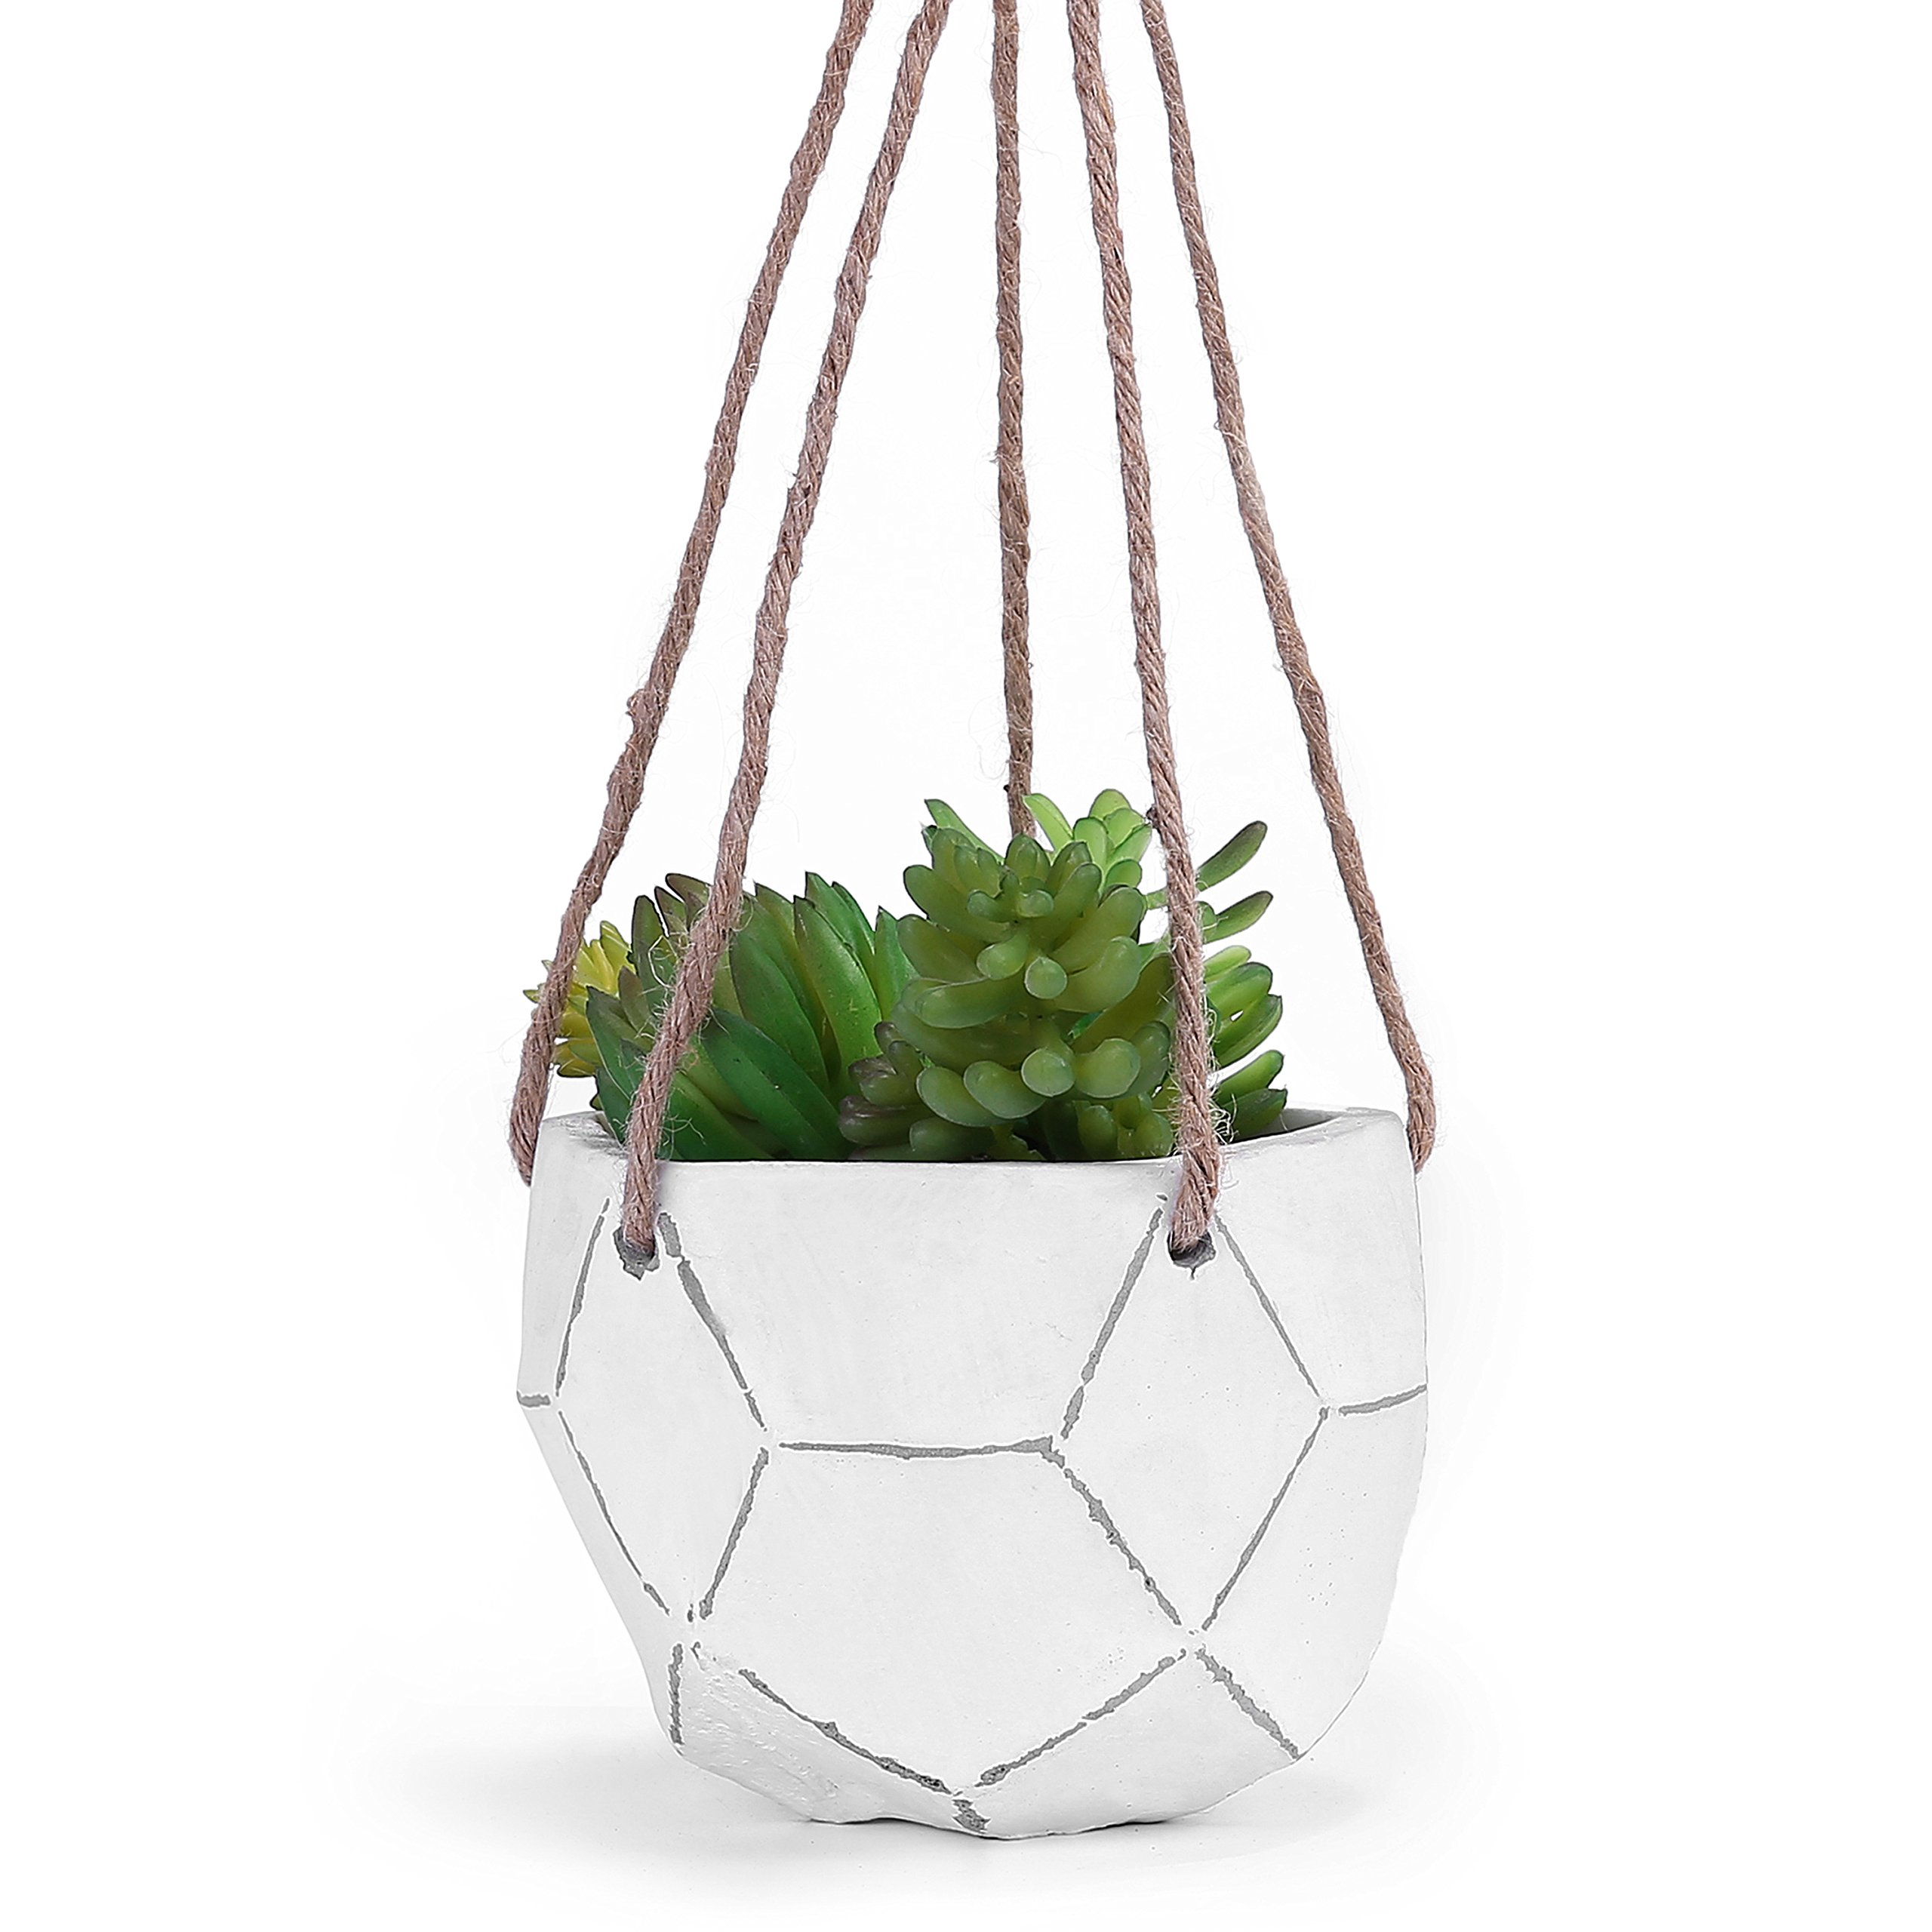 MyGift Geometric Design Hand-Painted Clay Hanging Succulent Planter Pot